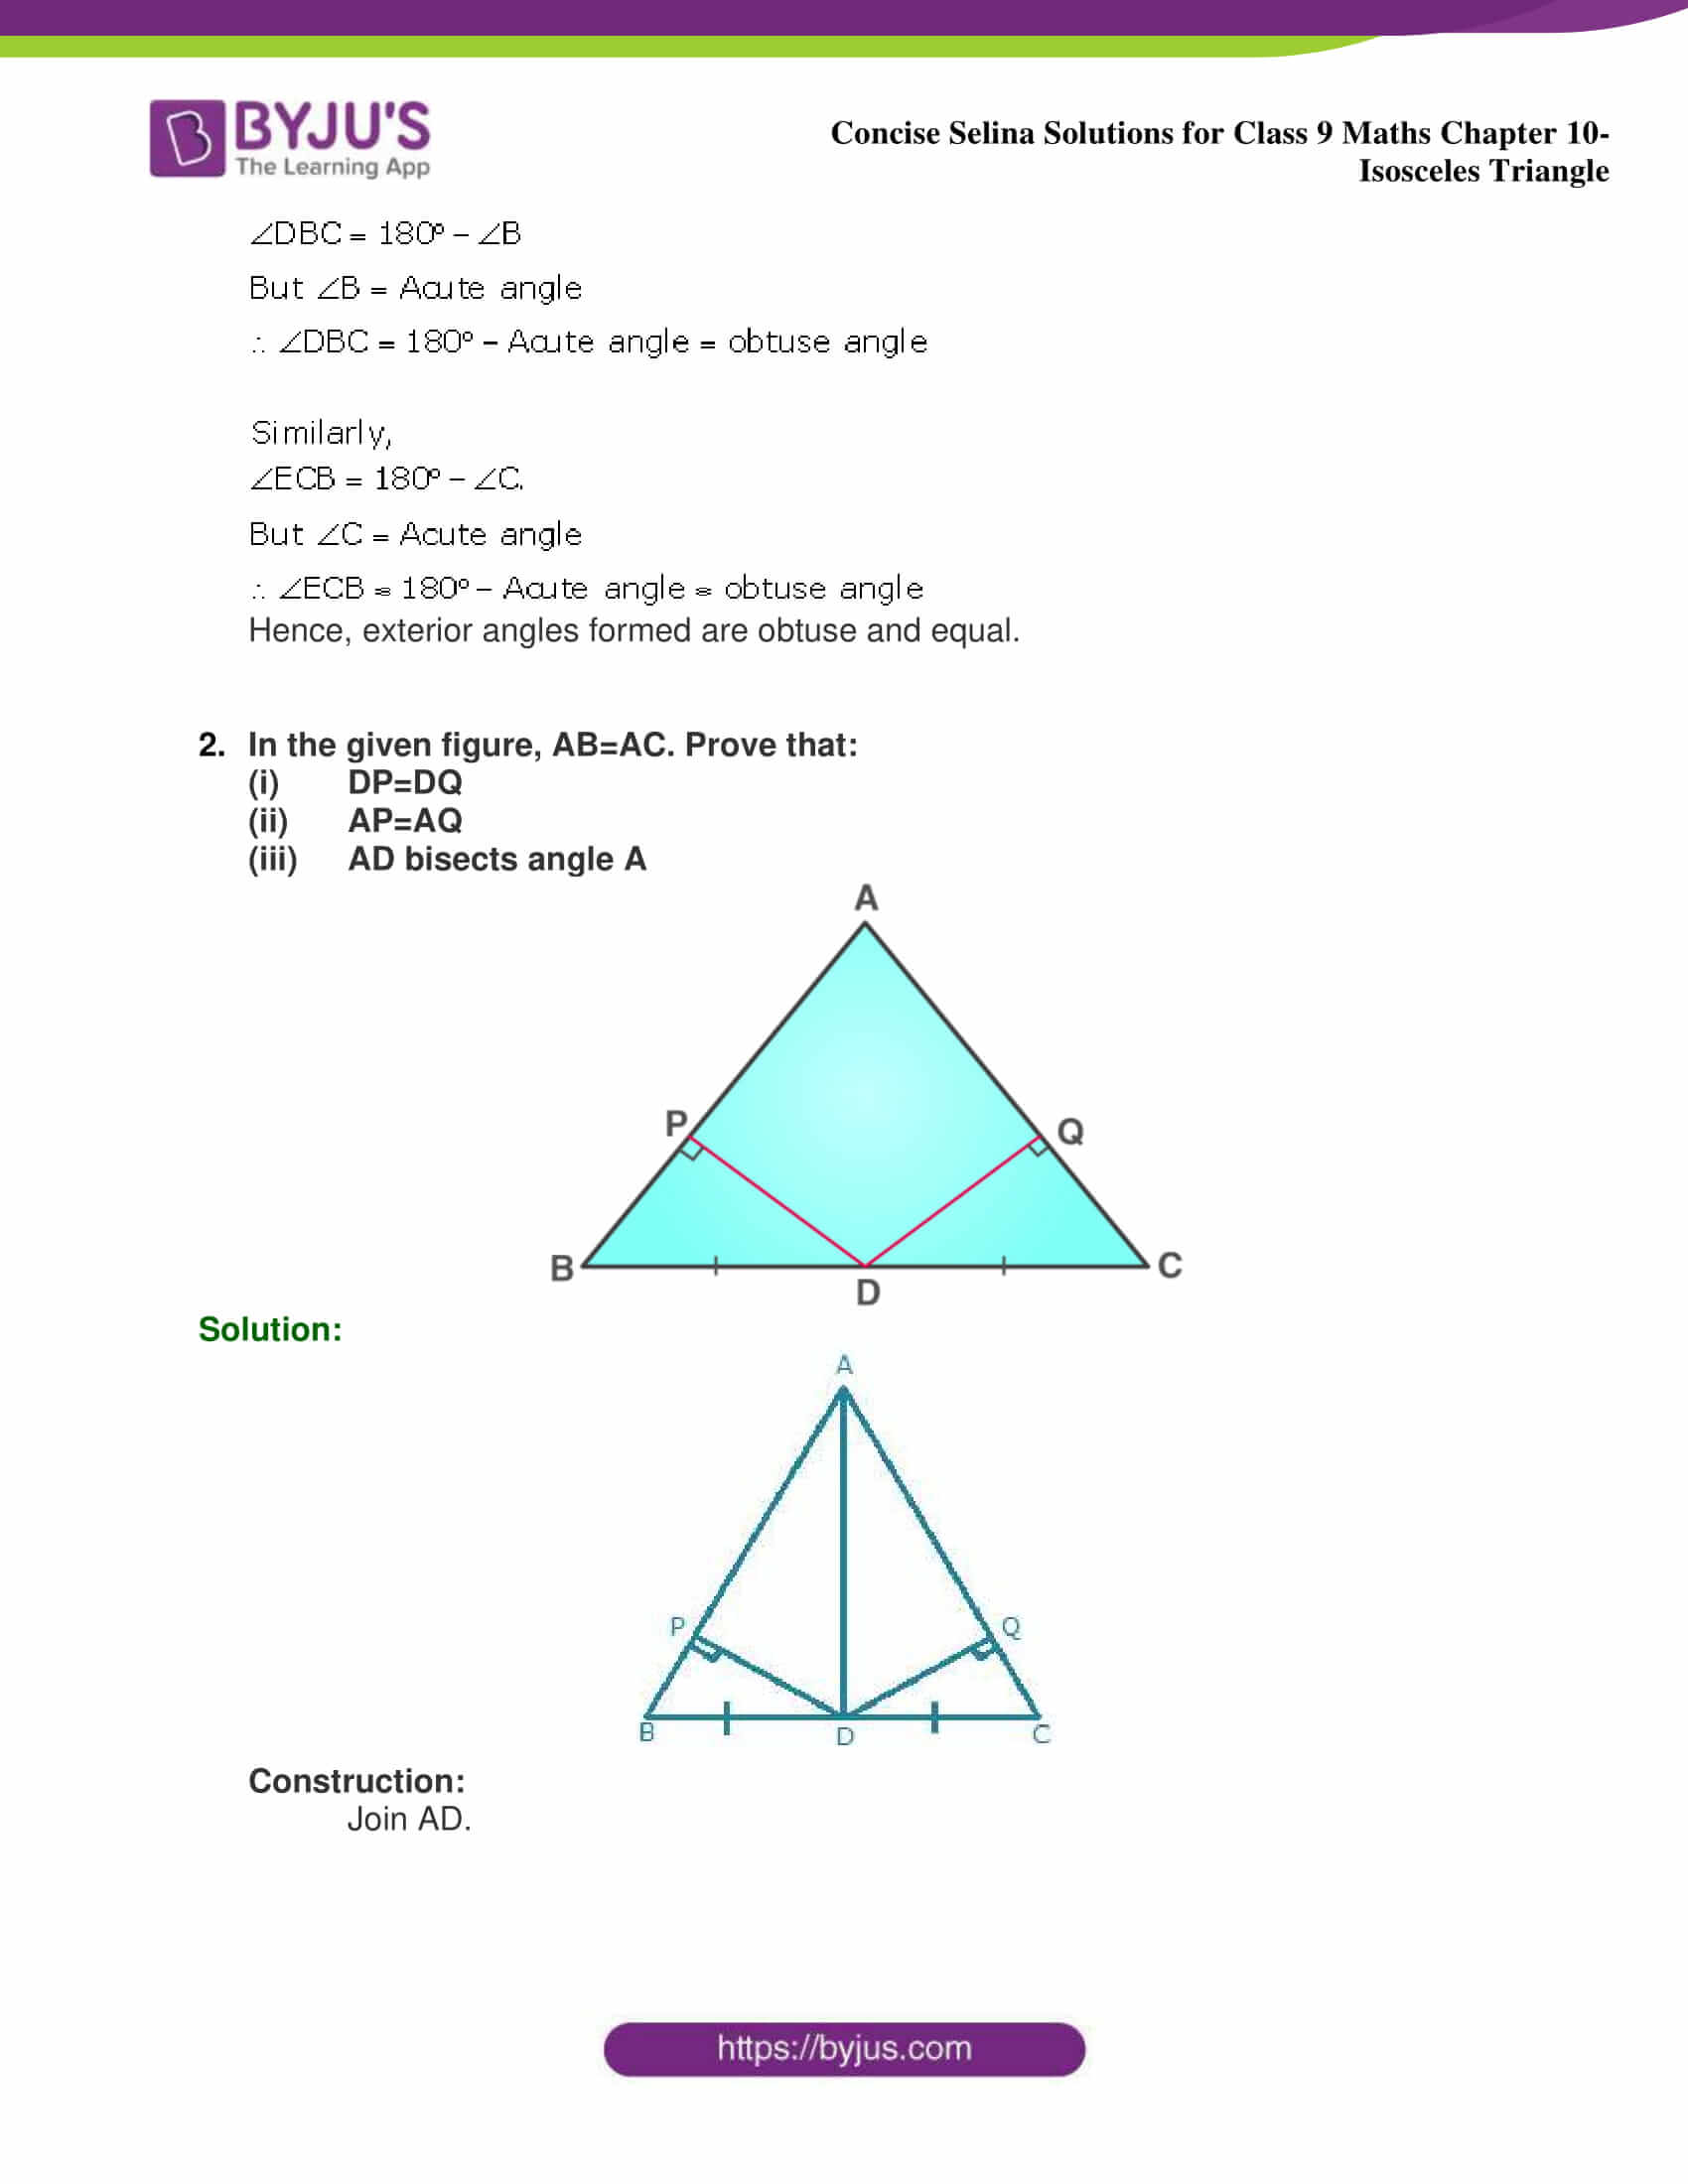 selina Solutions for Class 9 Maths Chapter 10 part 22